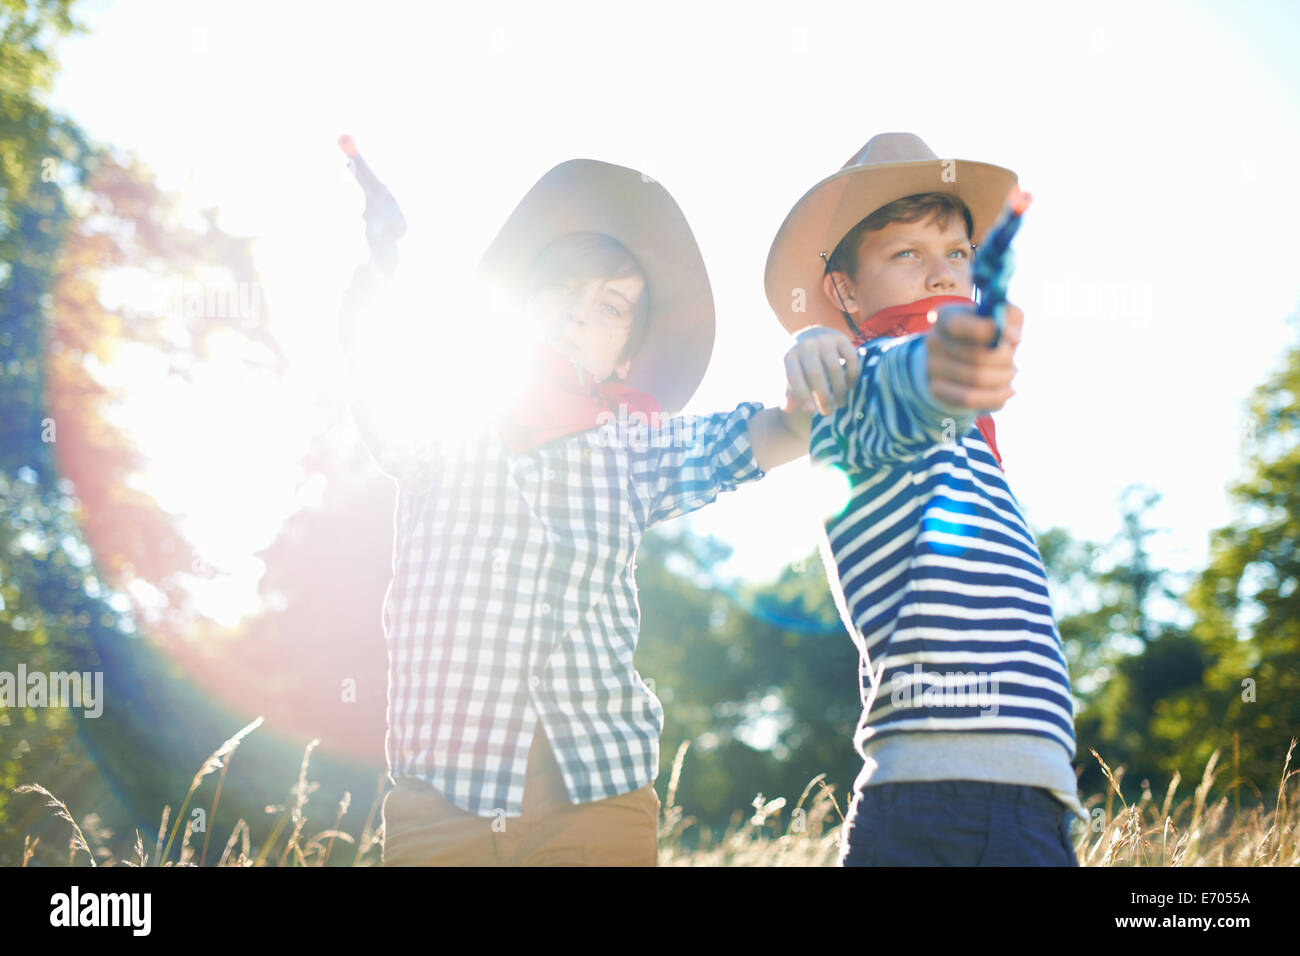 Two young boys dressed as cowboys, holding toy guns - Stock Image